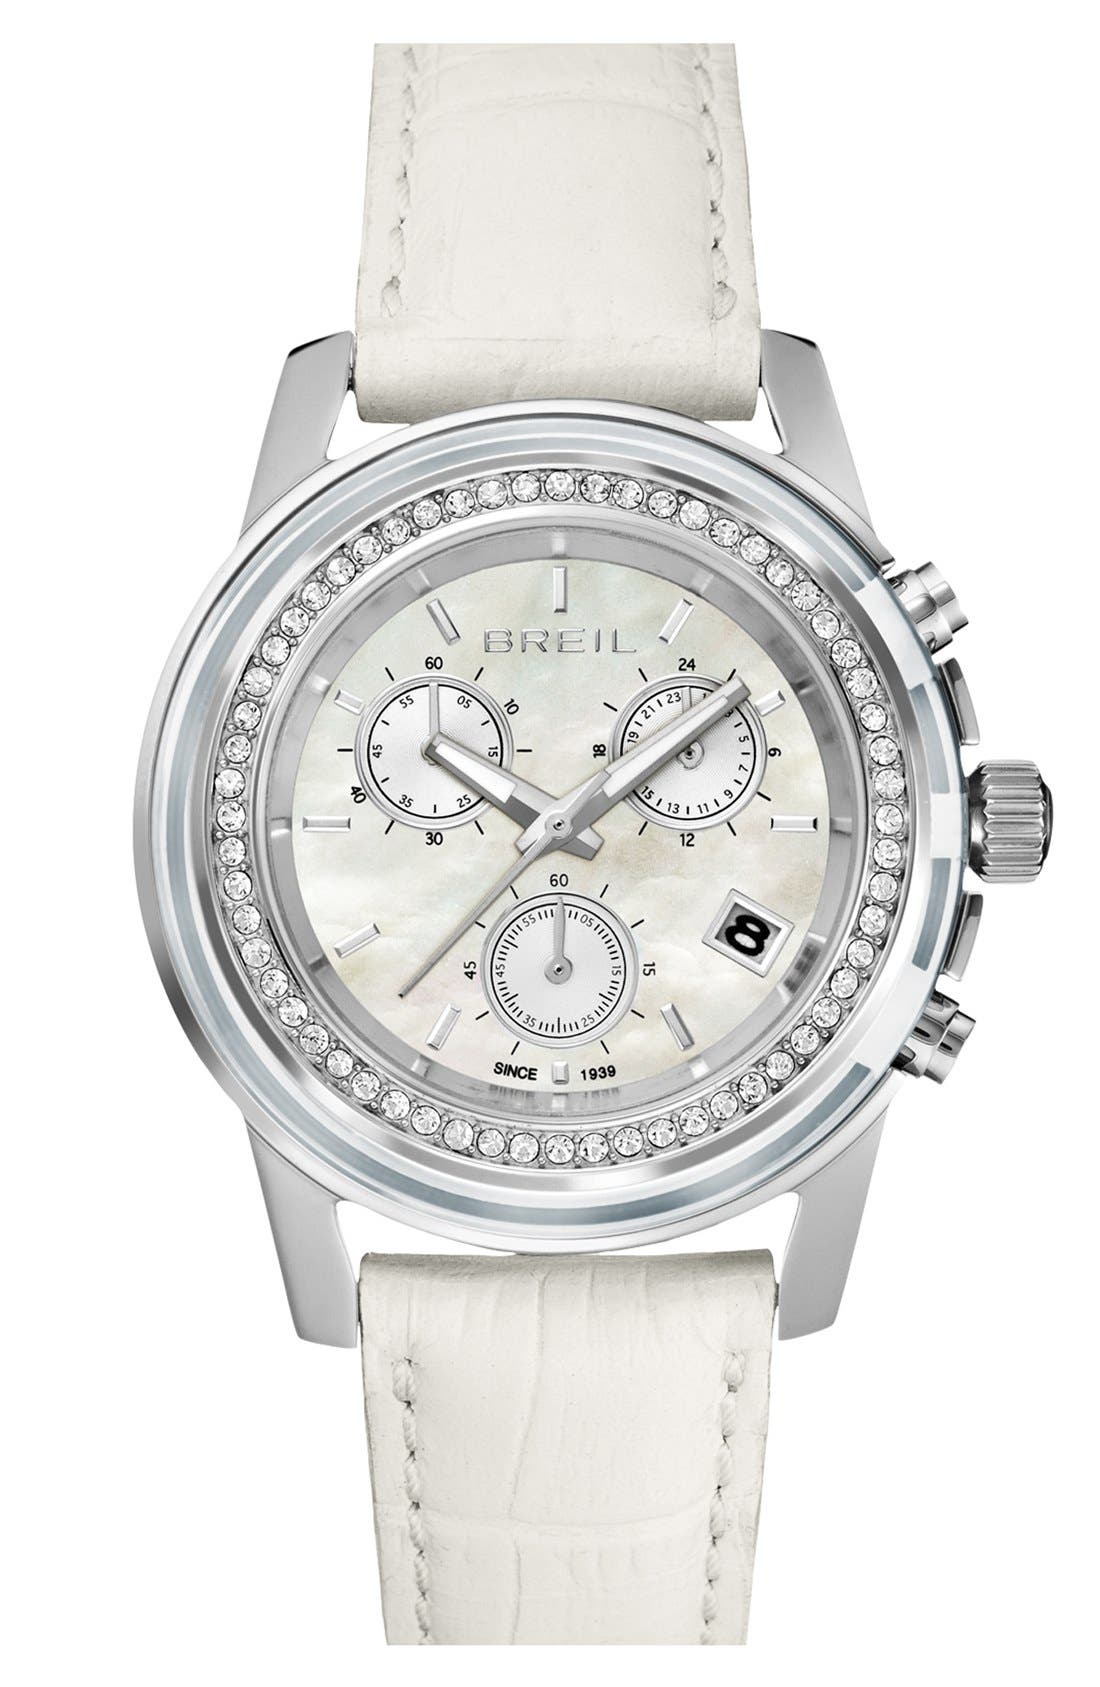 Main Image - Breil 'Orchestra' Crystal Bezel Chronograph Watch, 37mm ($375 Value)